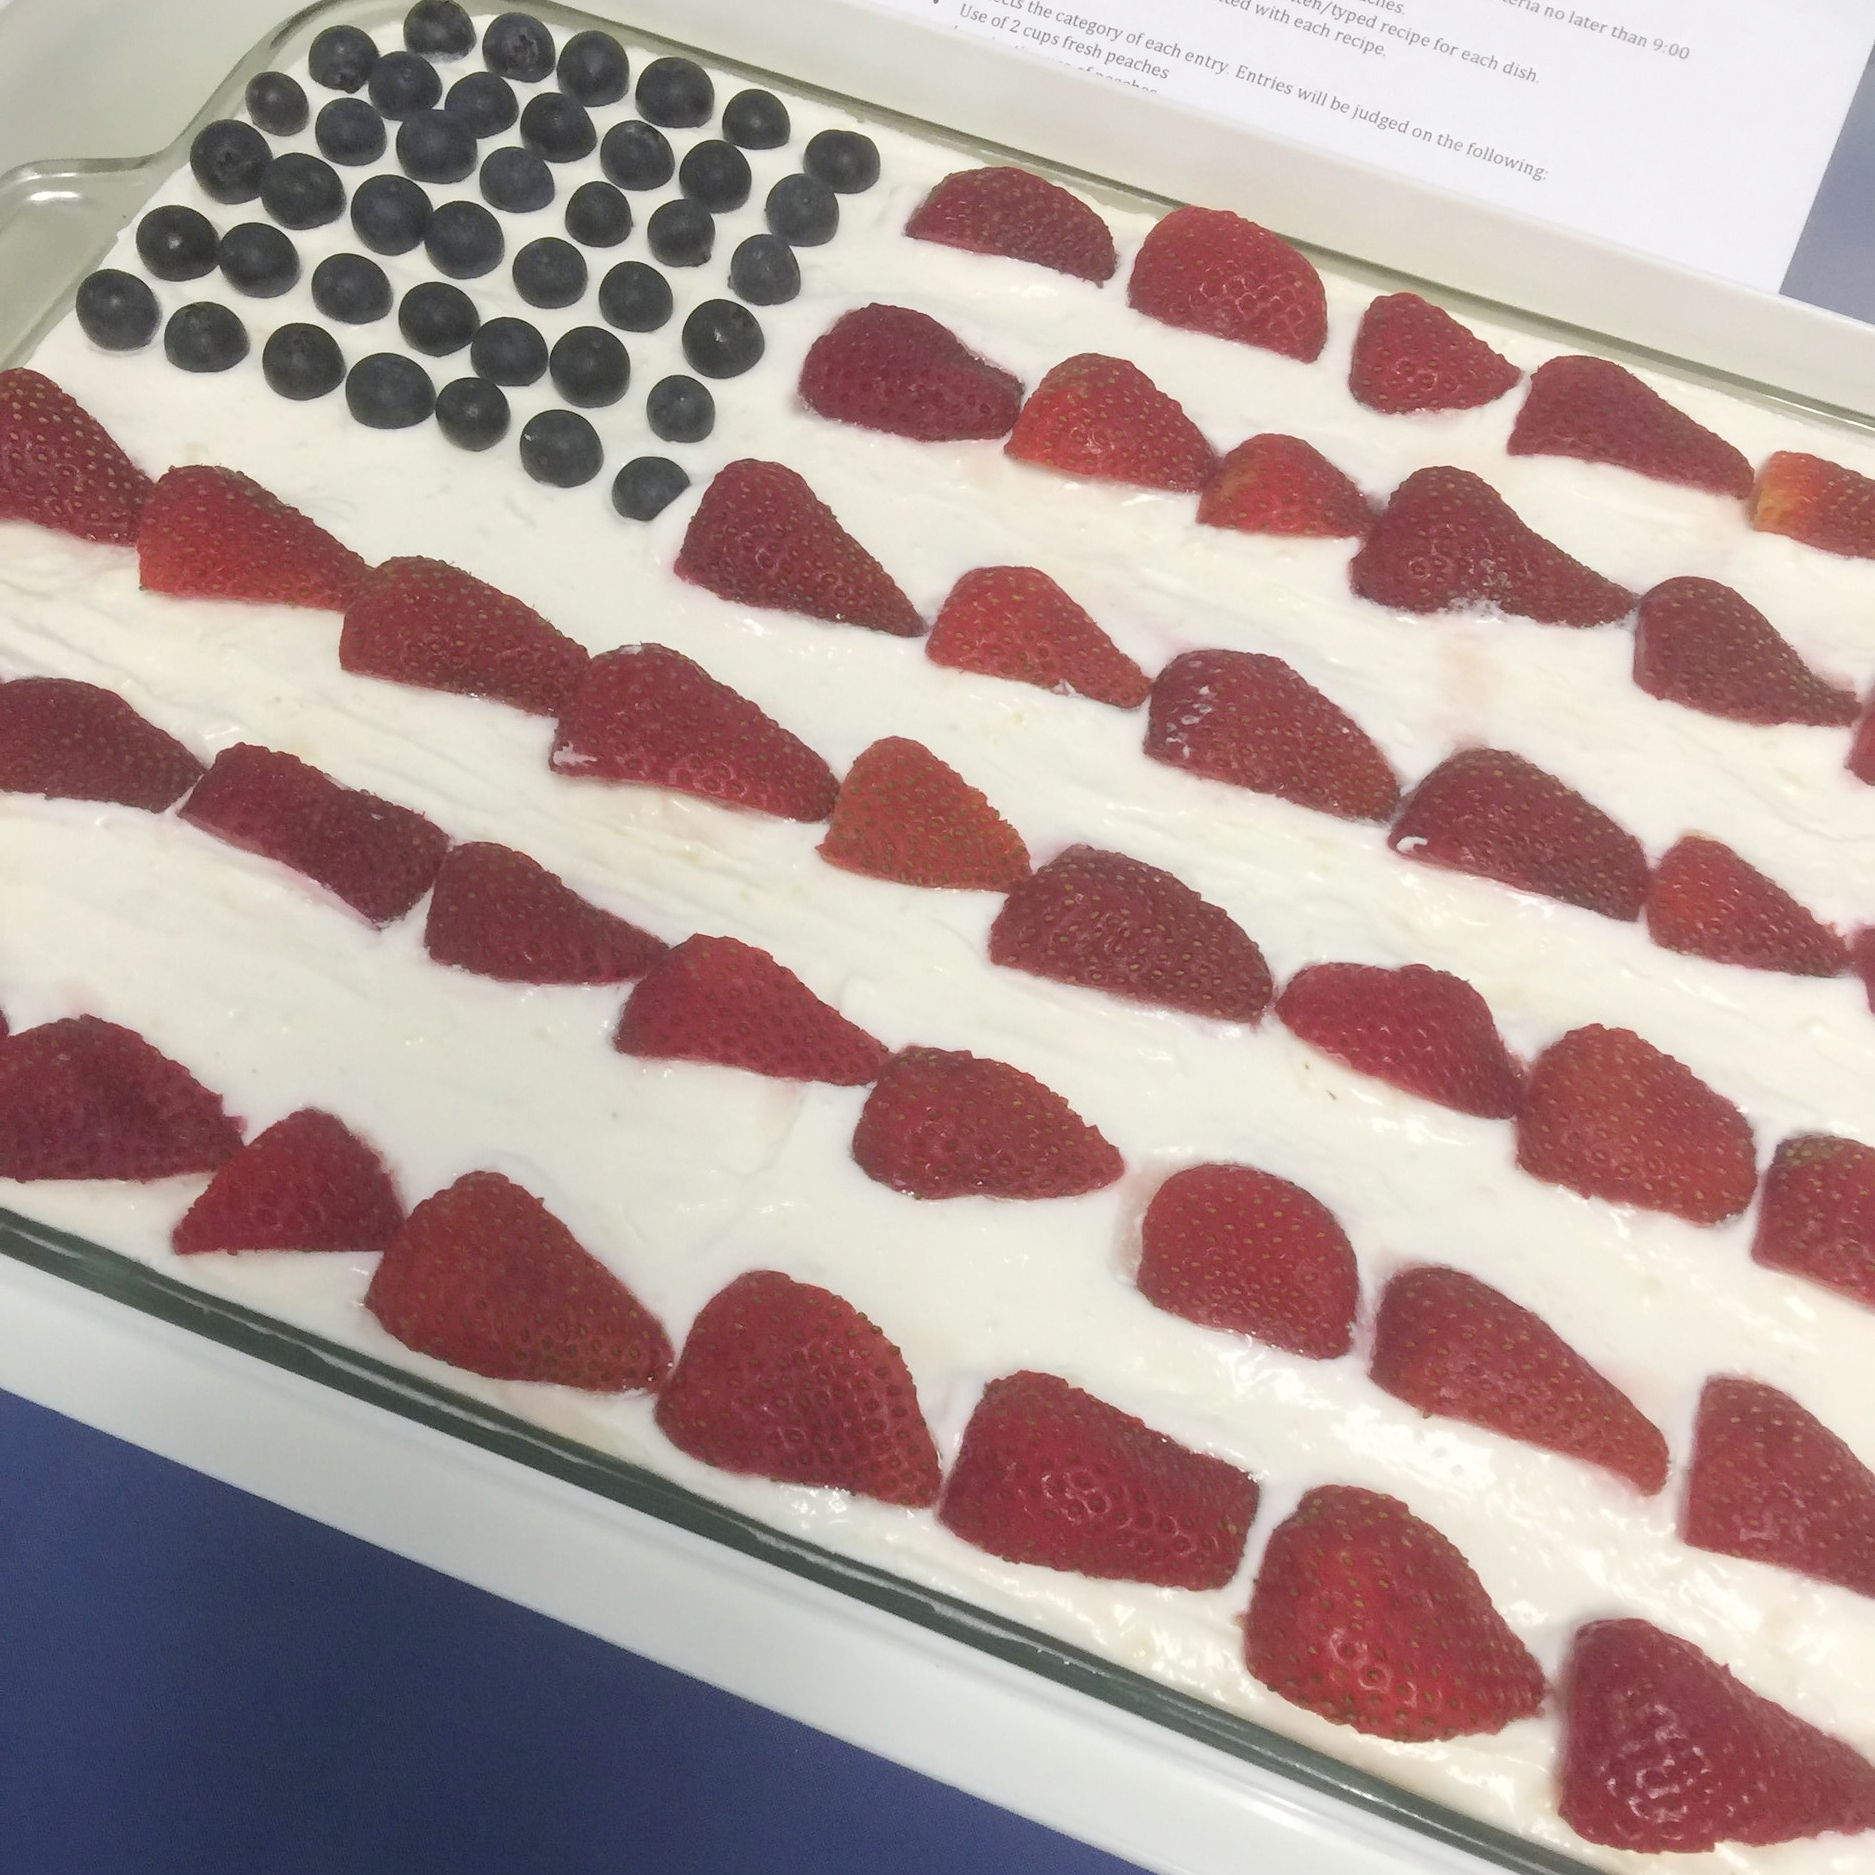 2017 2nd Place Dessert - Berry Peach Patriotic Icebox Cake